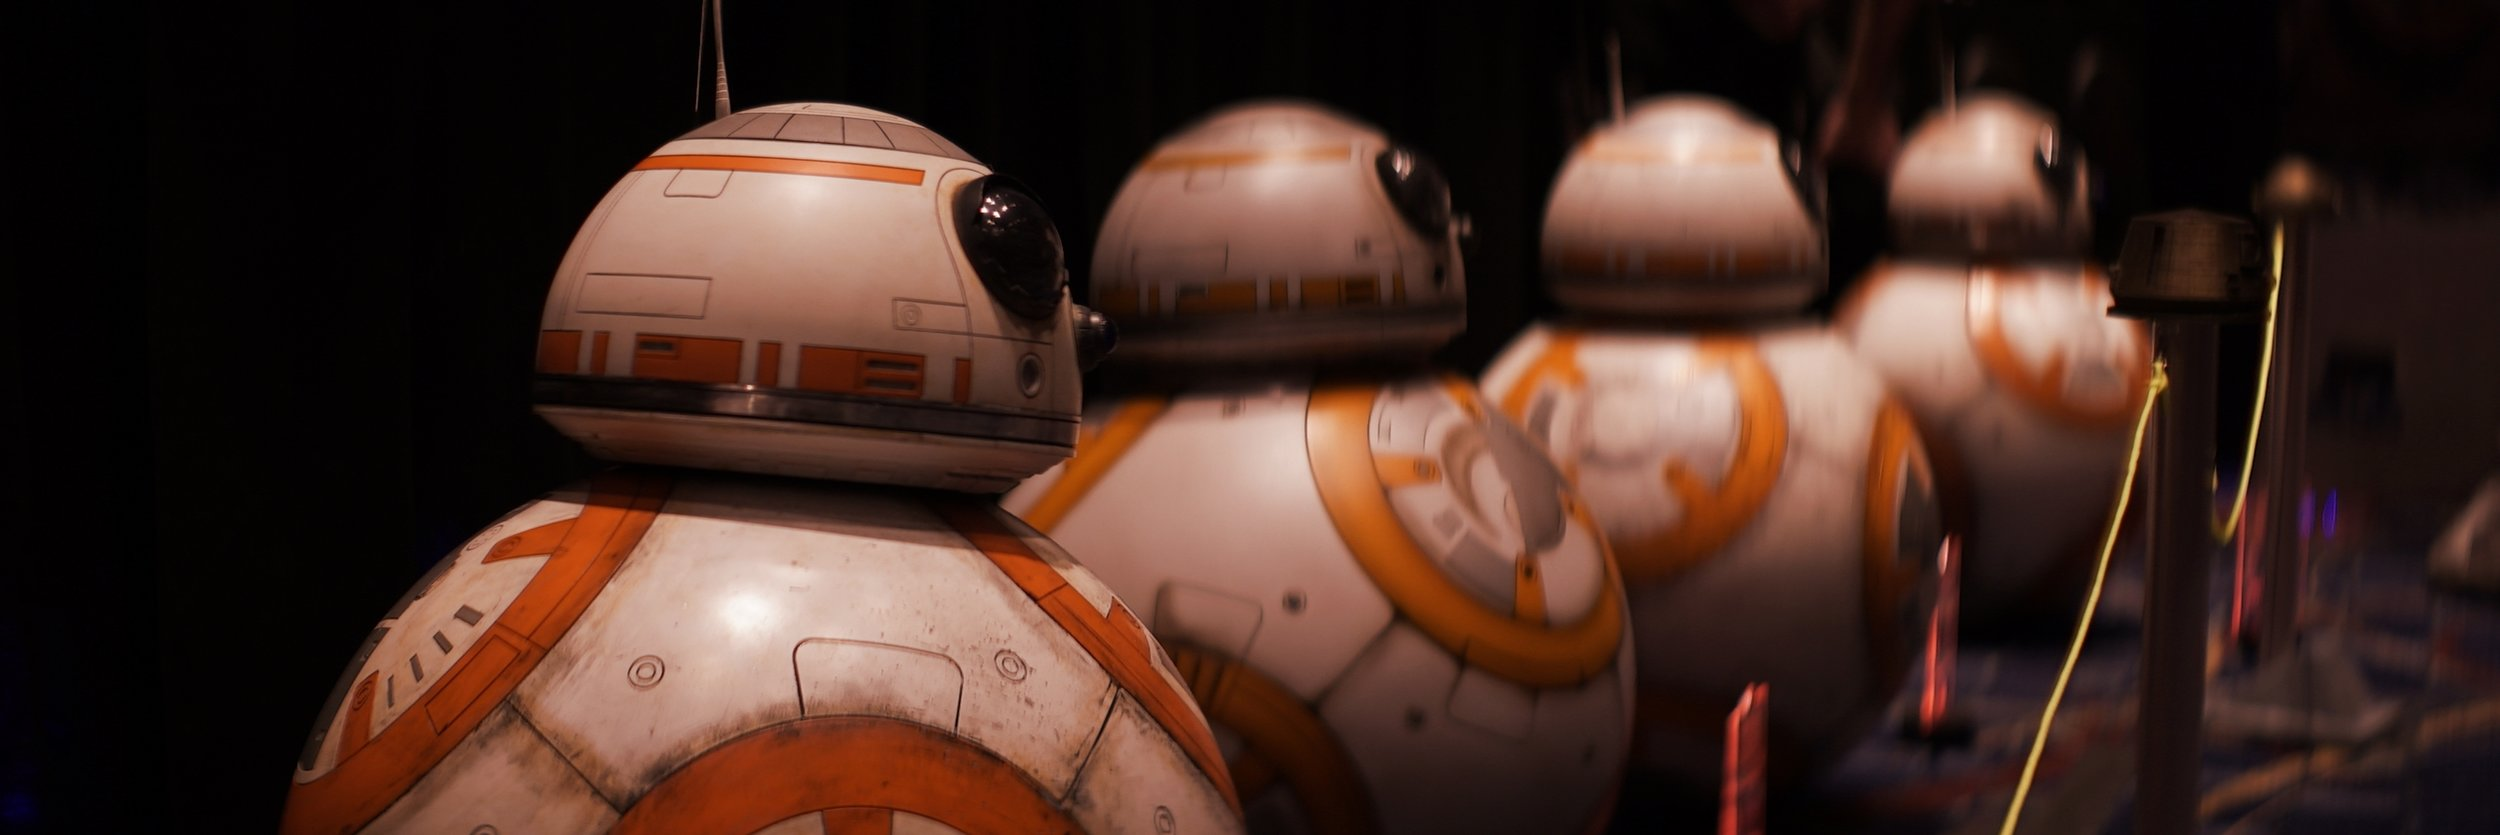 Lomo 75mm Anamorphic Lens | Star Wars Celebration Chicago - SWCC | A group of BB-8 droids stand in a line in the Droid Builders room. - Photo by: Keith Nickoson